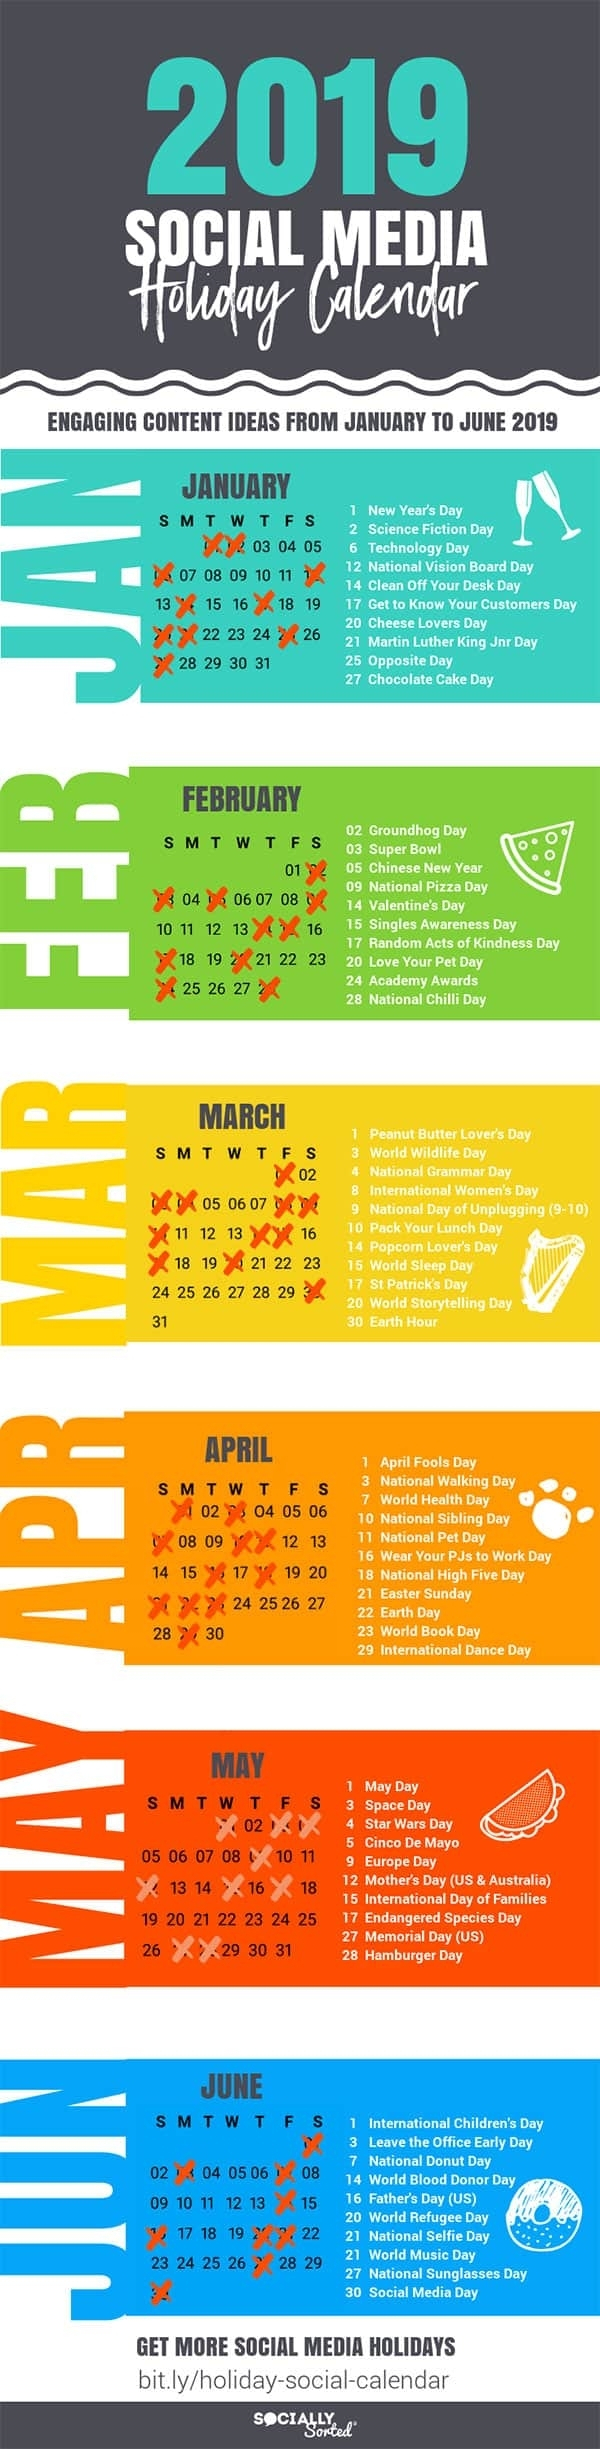 Get National Day Of The Year Calendar June 2019 ⋆ The Best